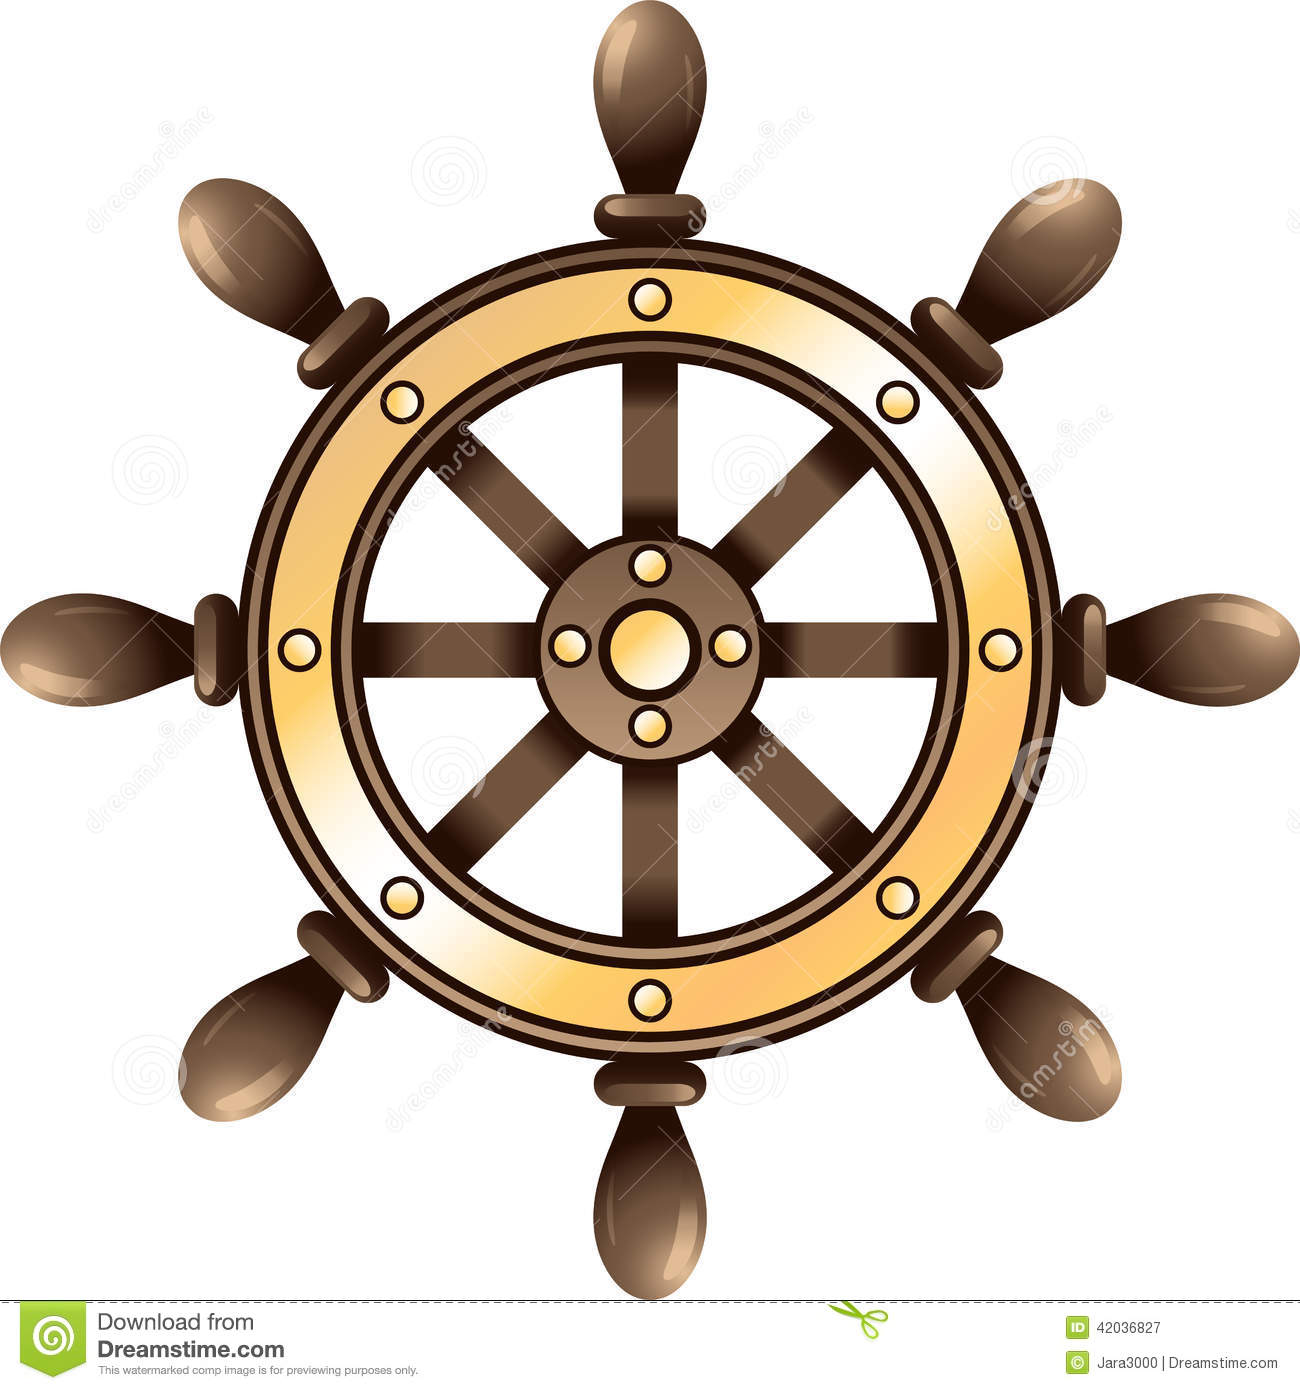 clipart ship steering wheel - photo #24